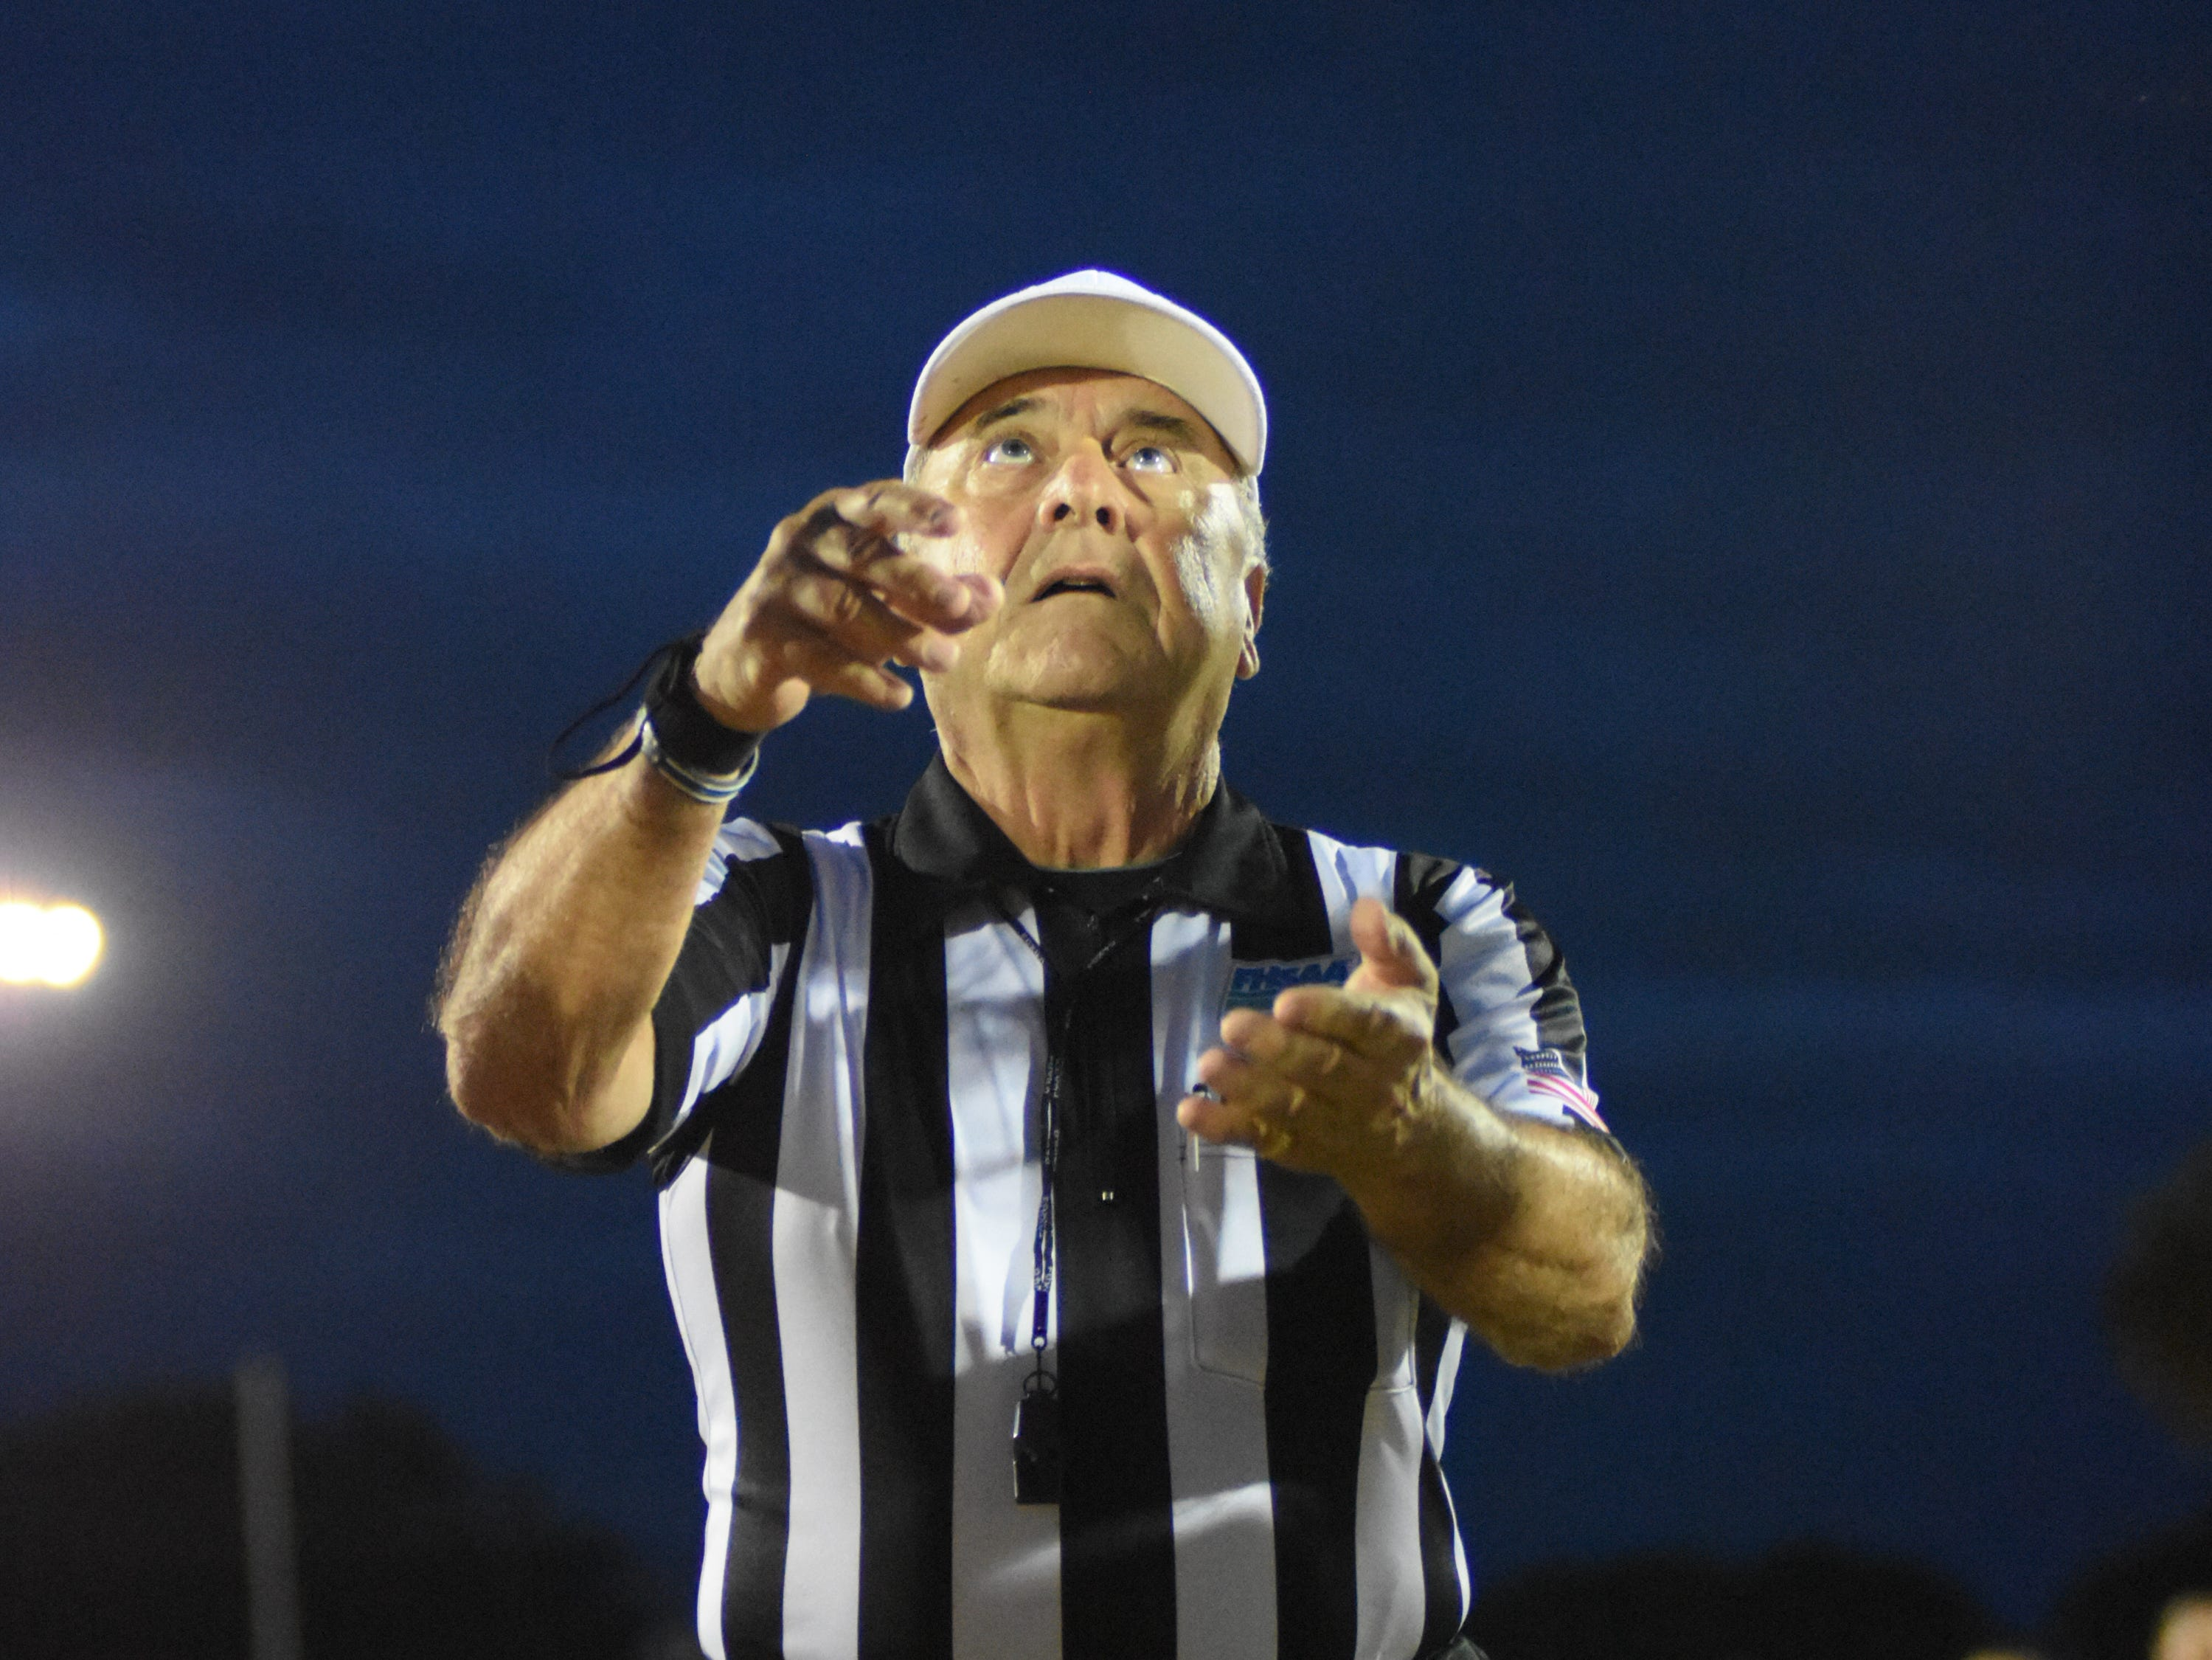 Referee Larry Torchia tosses the coin.